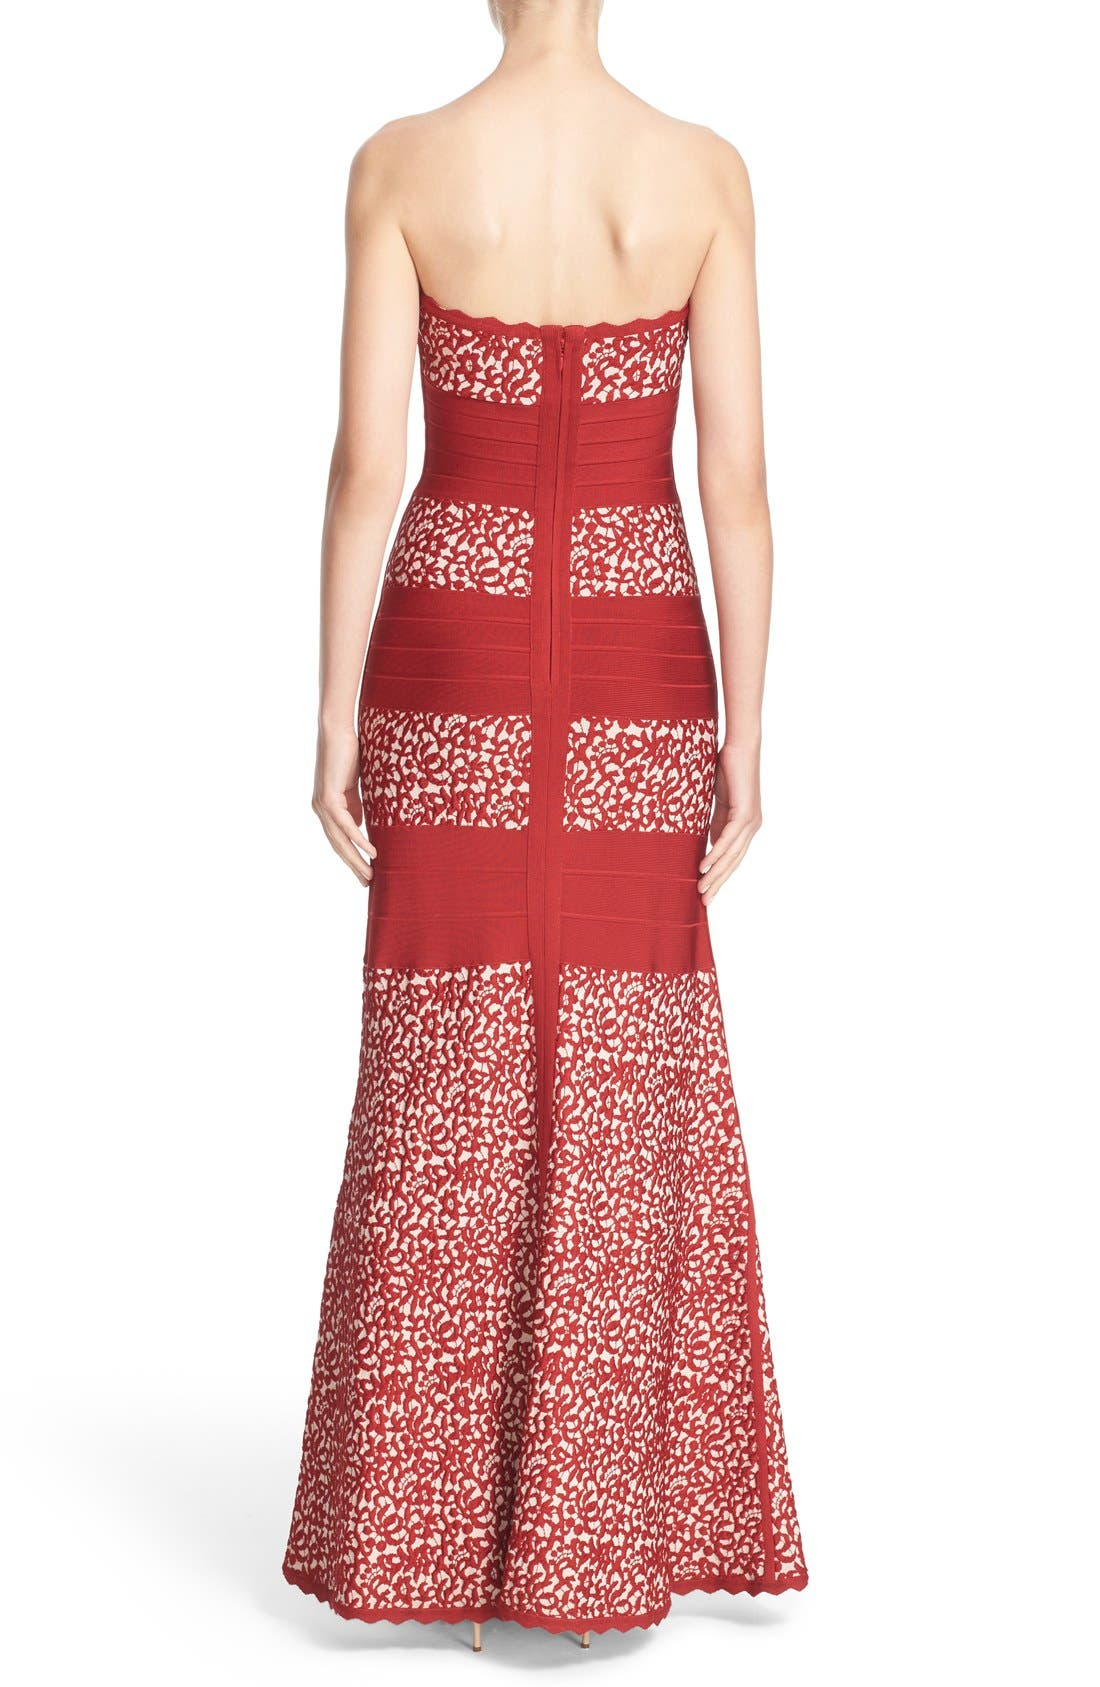 Alternate Image 2  - Herve Leger Raised Lace Detail Strapless Bandage Mermaid Gown